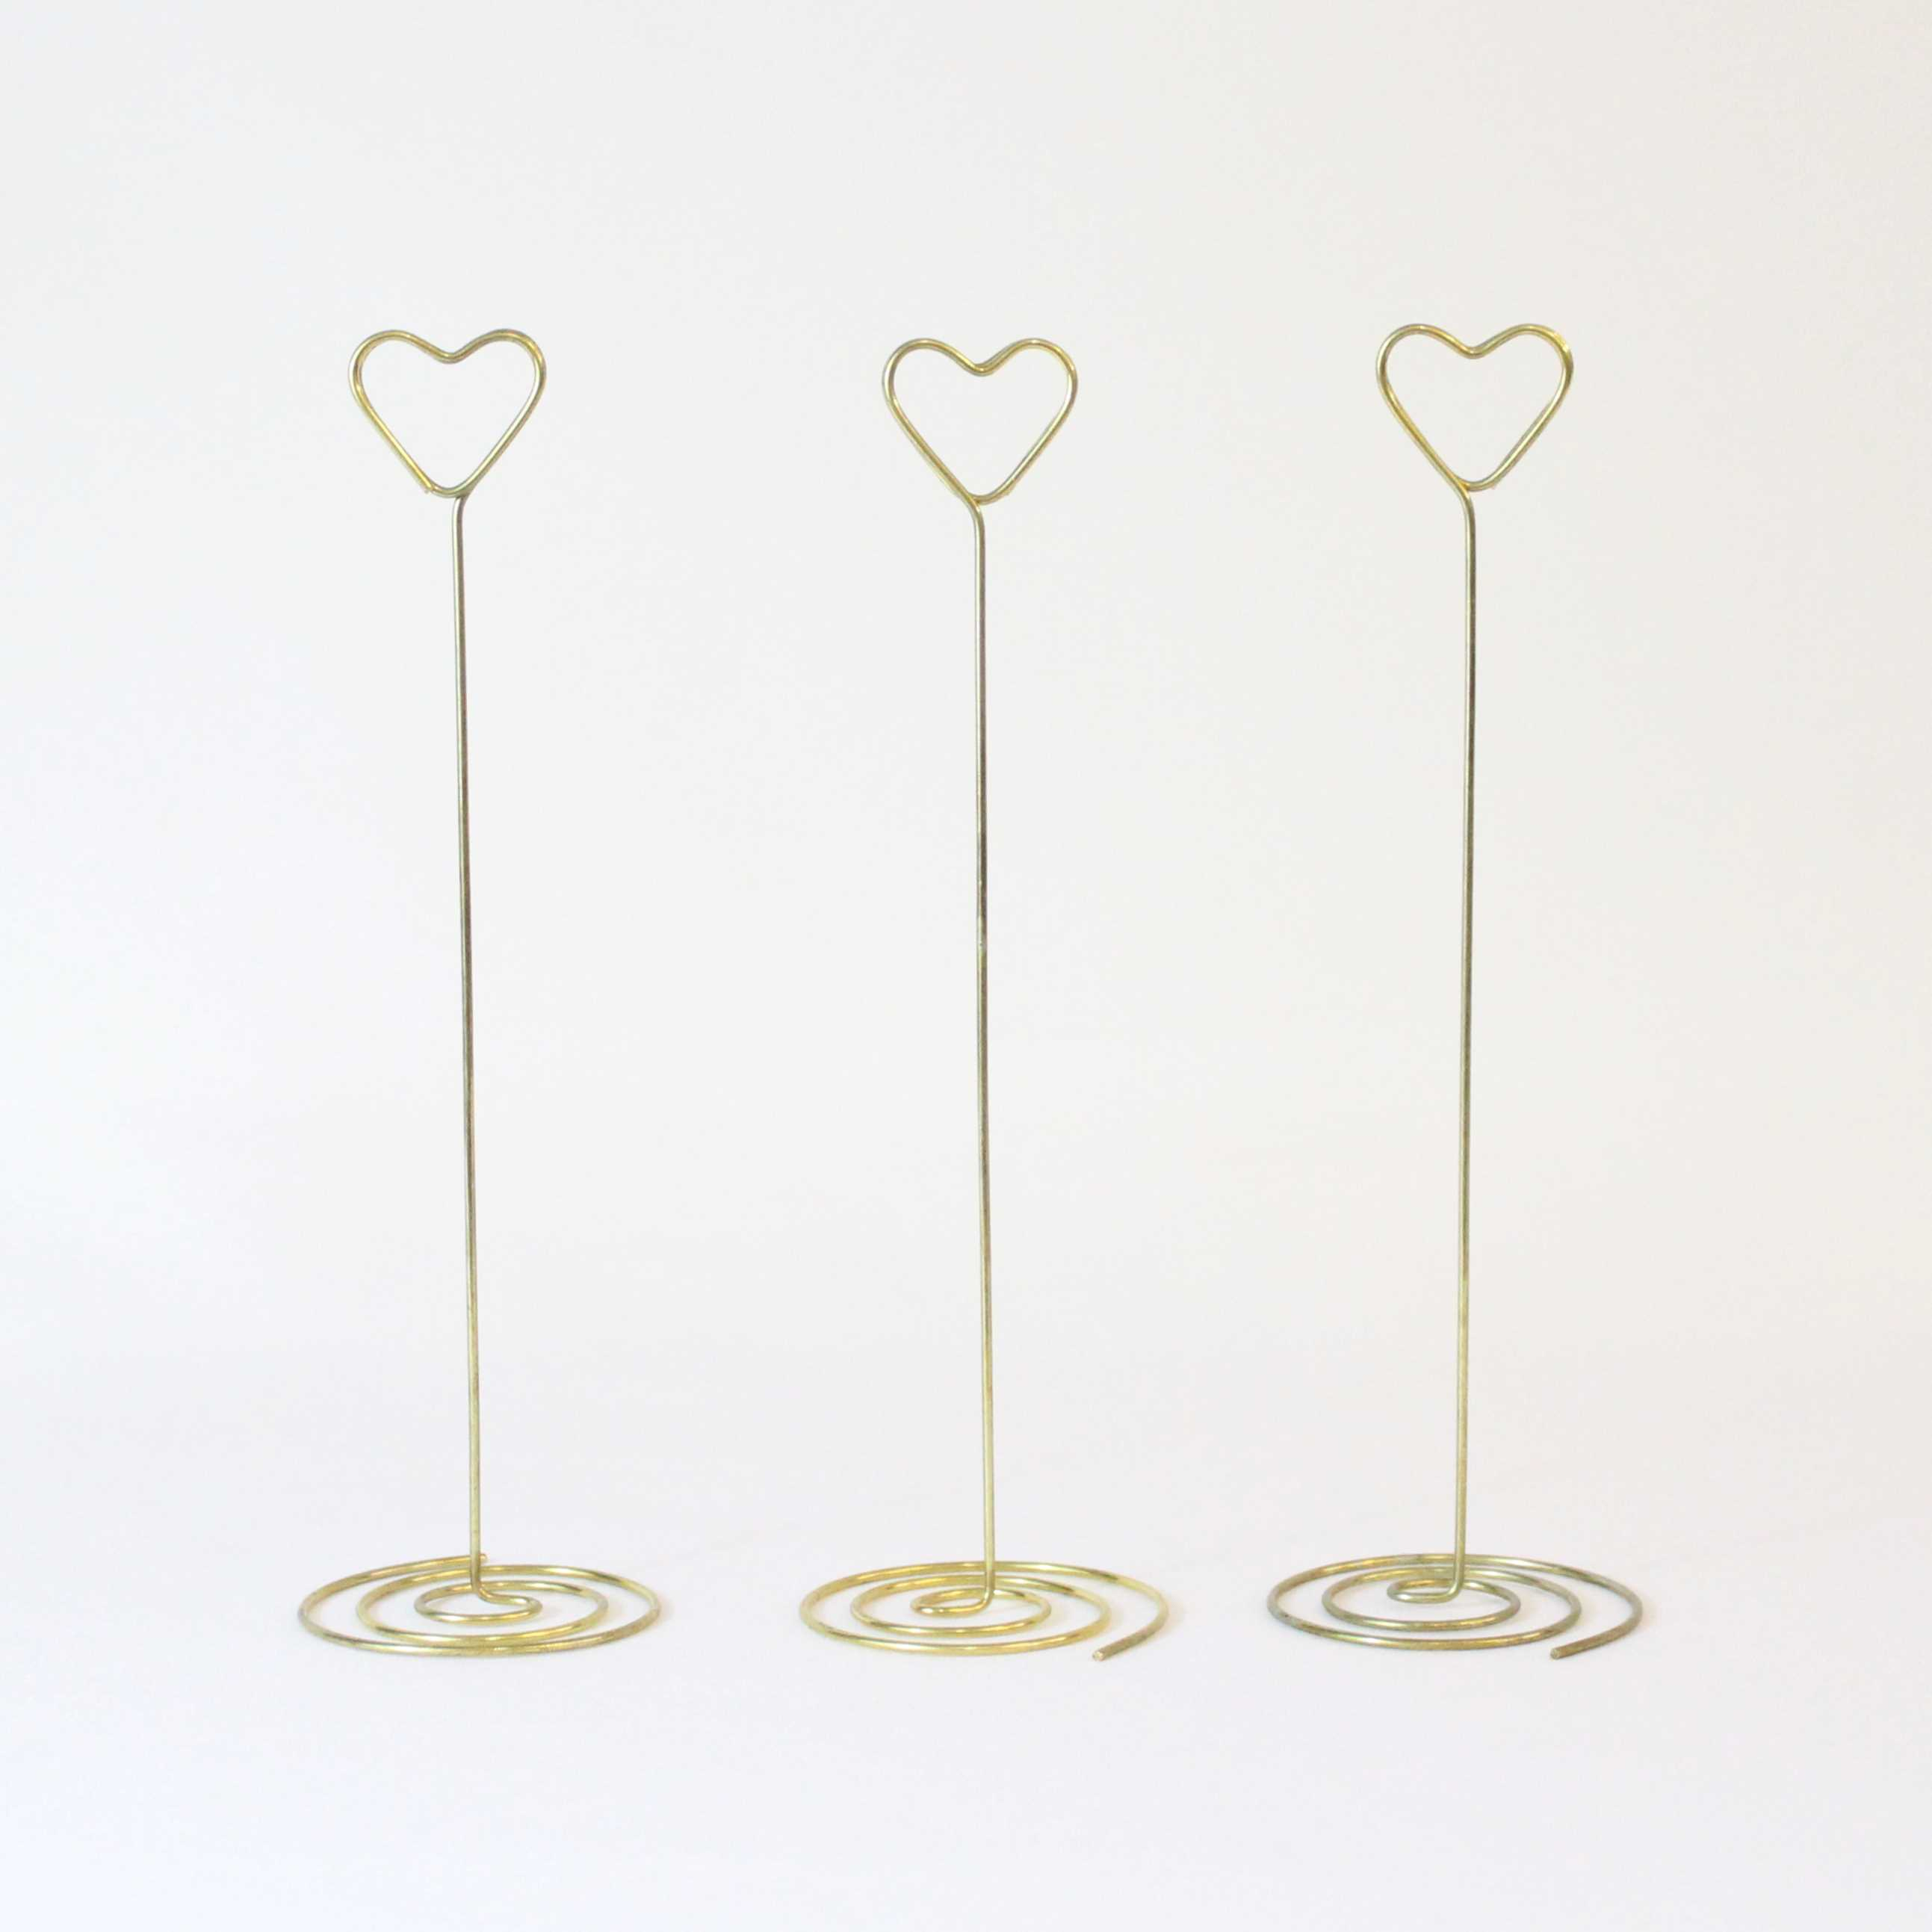 HEART TABLE NUMBER STANDS